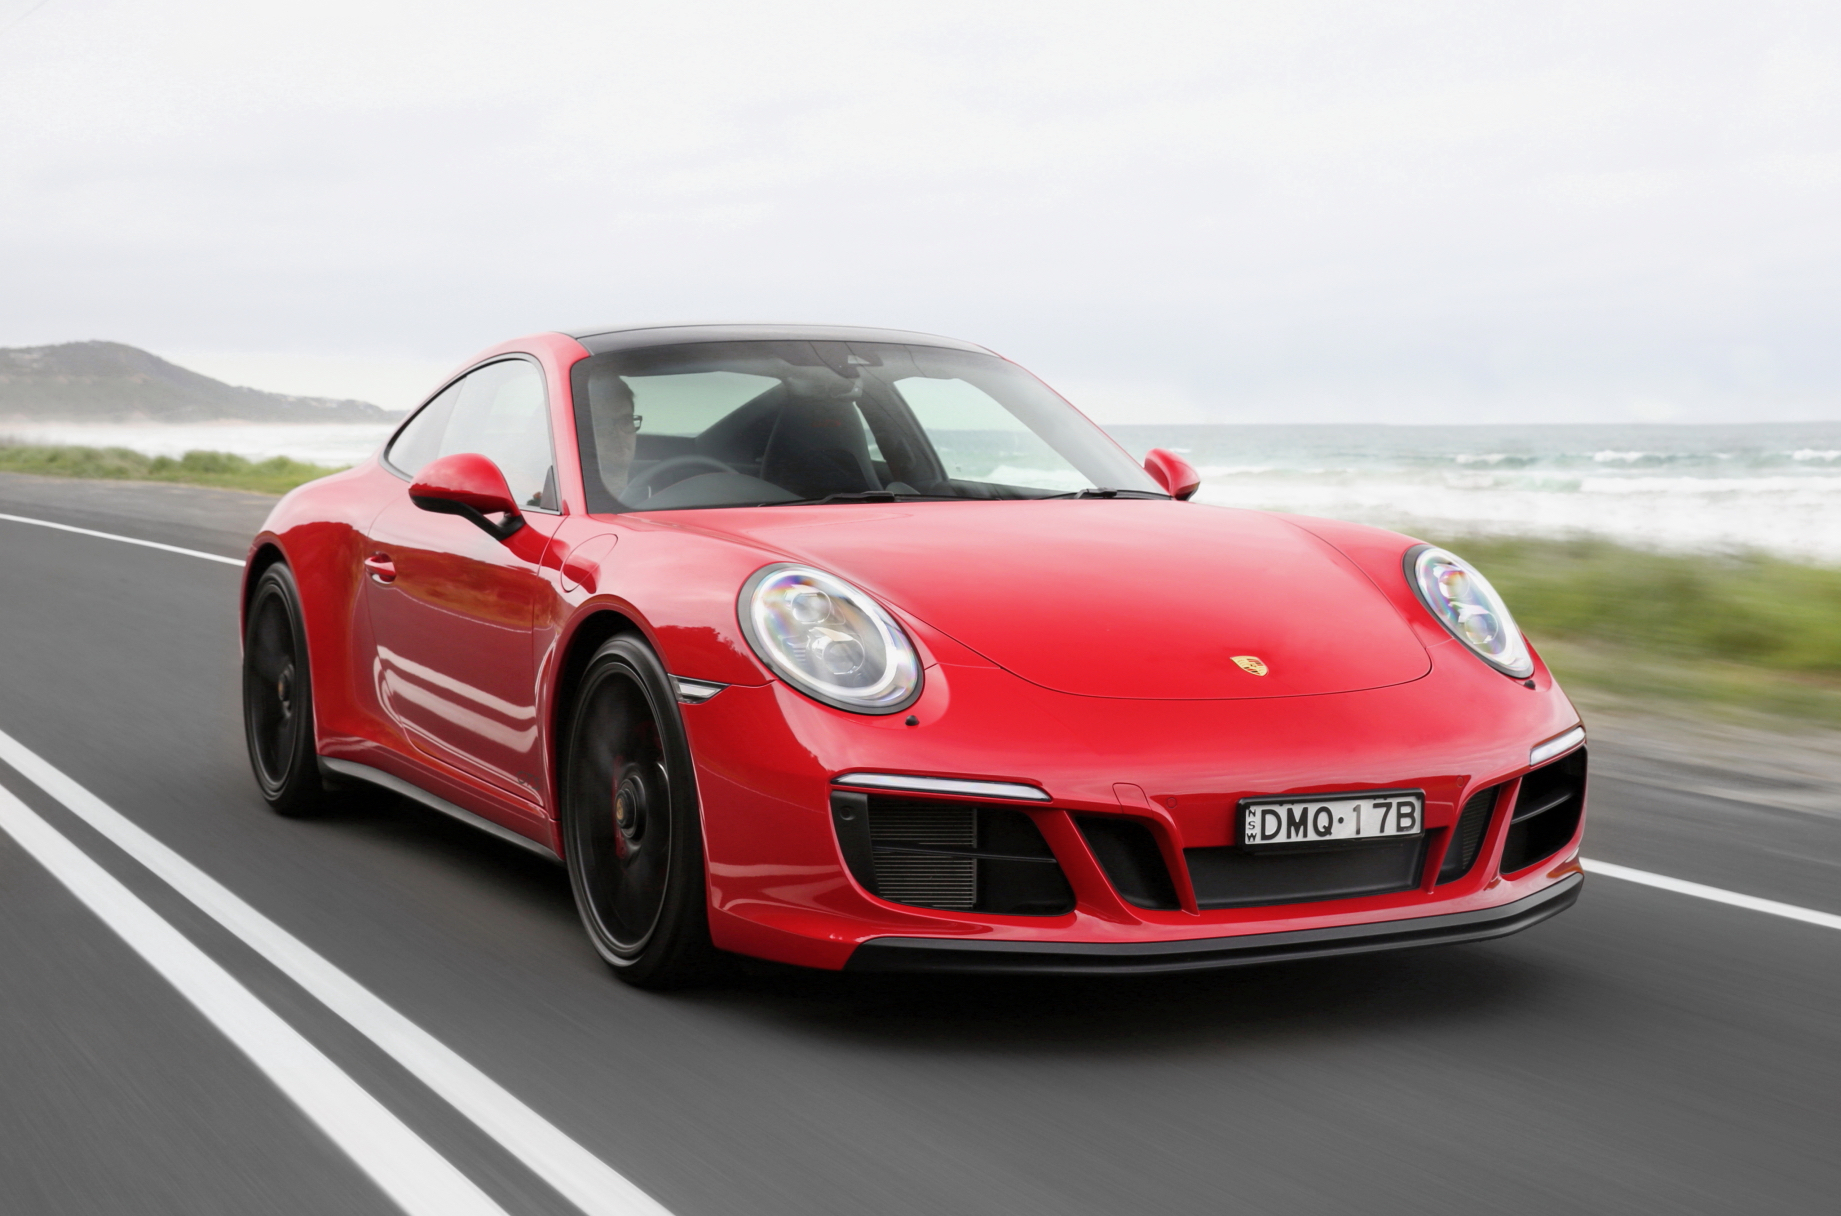 porsche carrera gt 2017 with Photos on 2010 Porsche 911 Gt3 Rs as well 2017 Chevrolet Camaro Zl1 First Drive in addition Ford Mustang Gt4 Racer Makes Debut Sema also 749 Porsche Wallpapers For Desktop Wallpaper 4 in addition Porsche 911 GTS 2017 Range Price Pictures Power Engine.